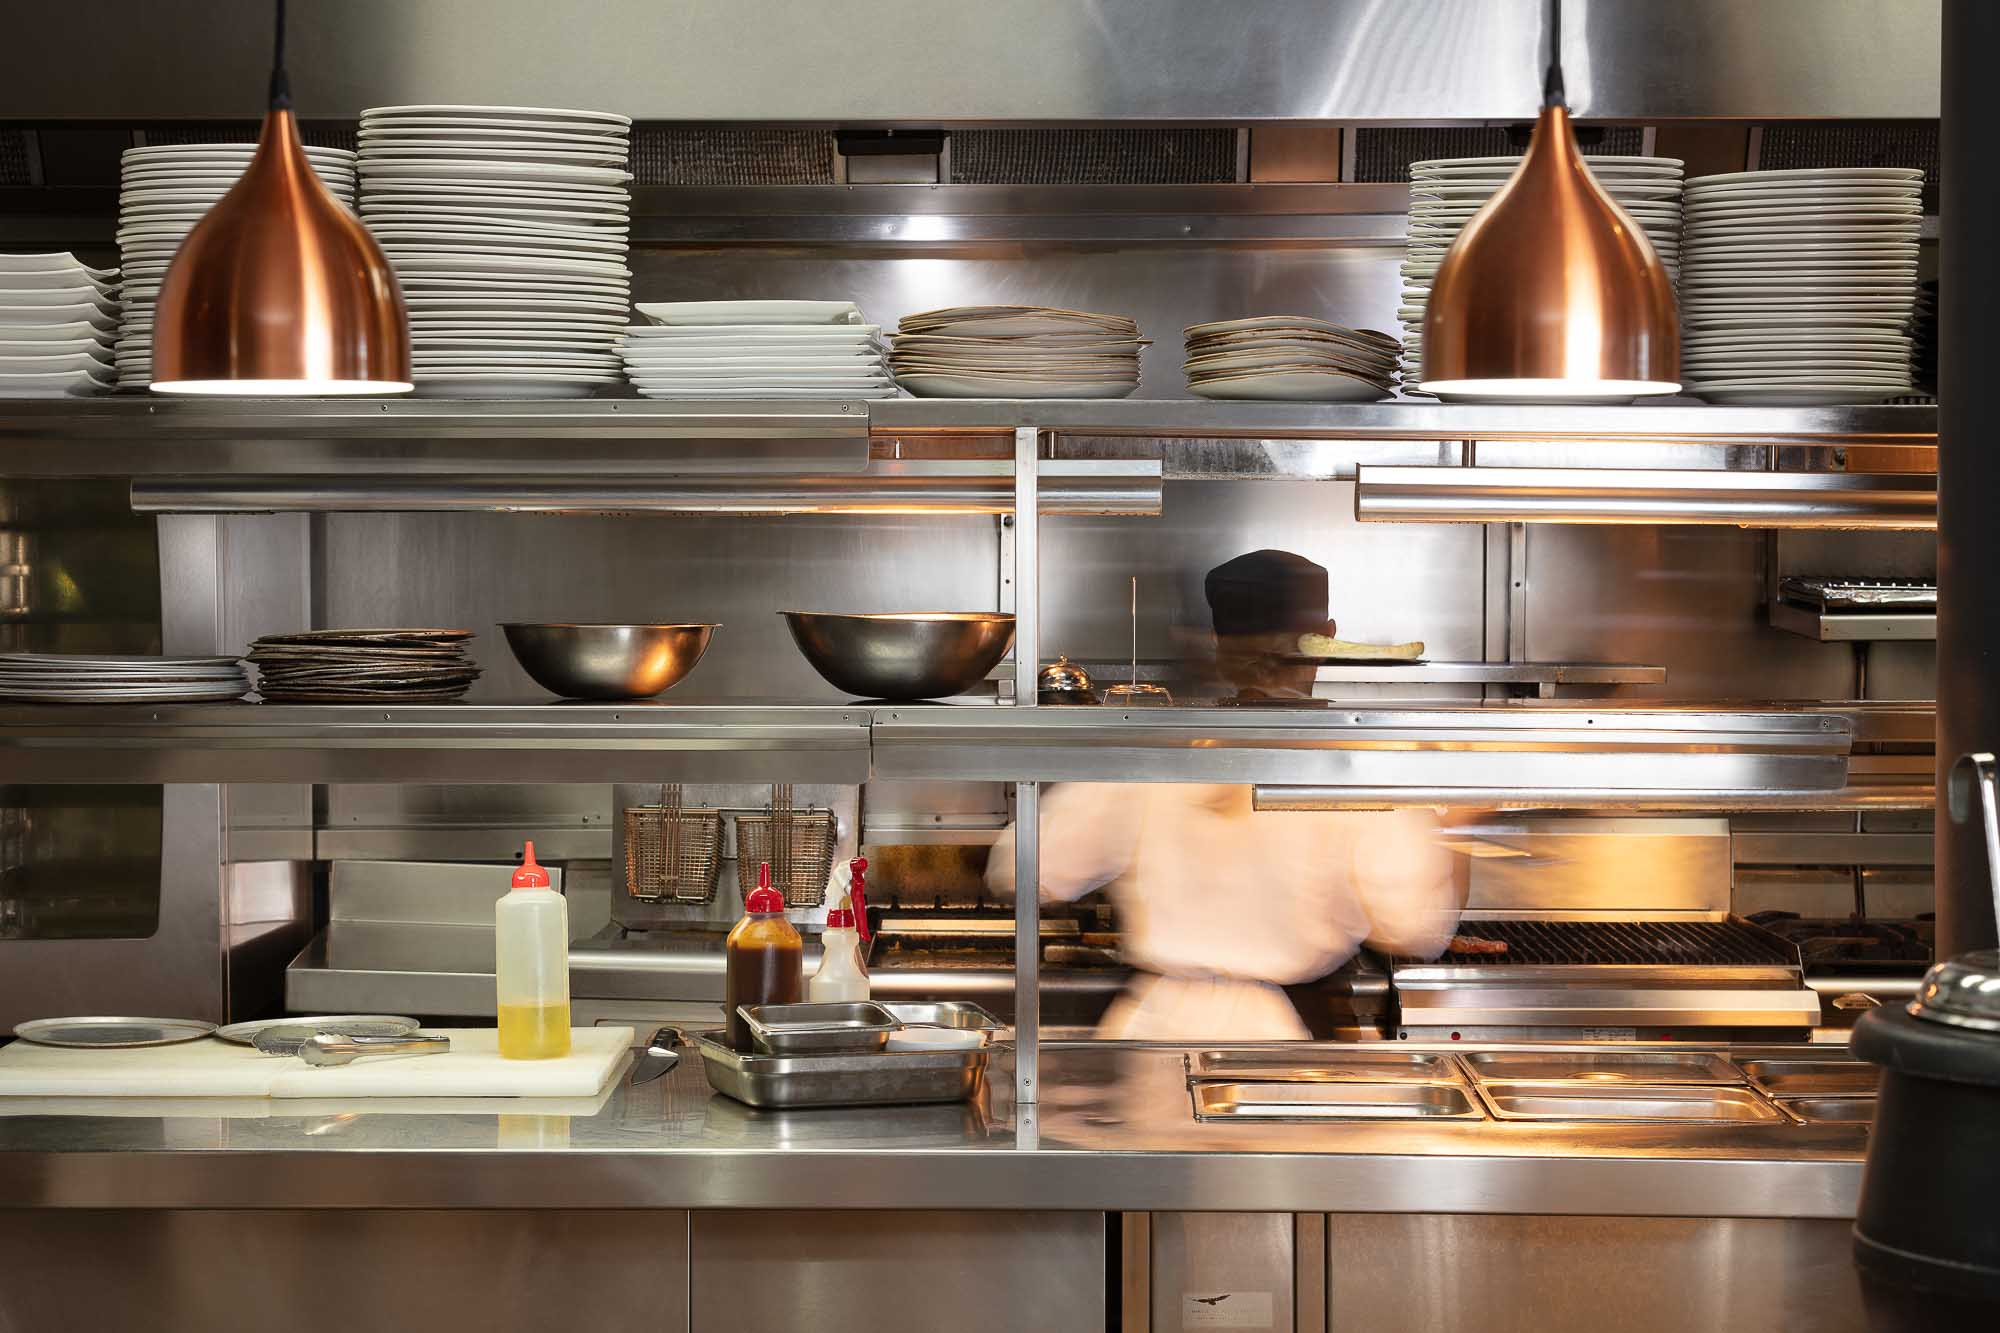 Commercial Bar photography sample - Food preparation area